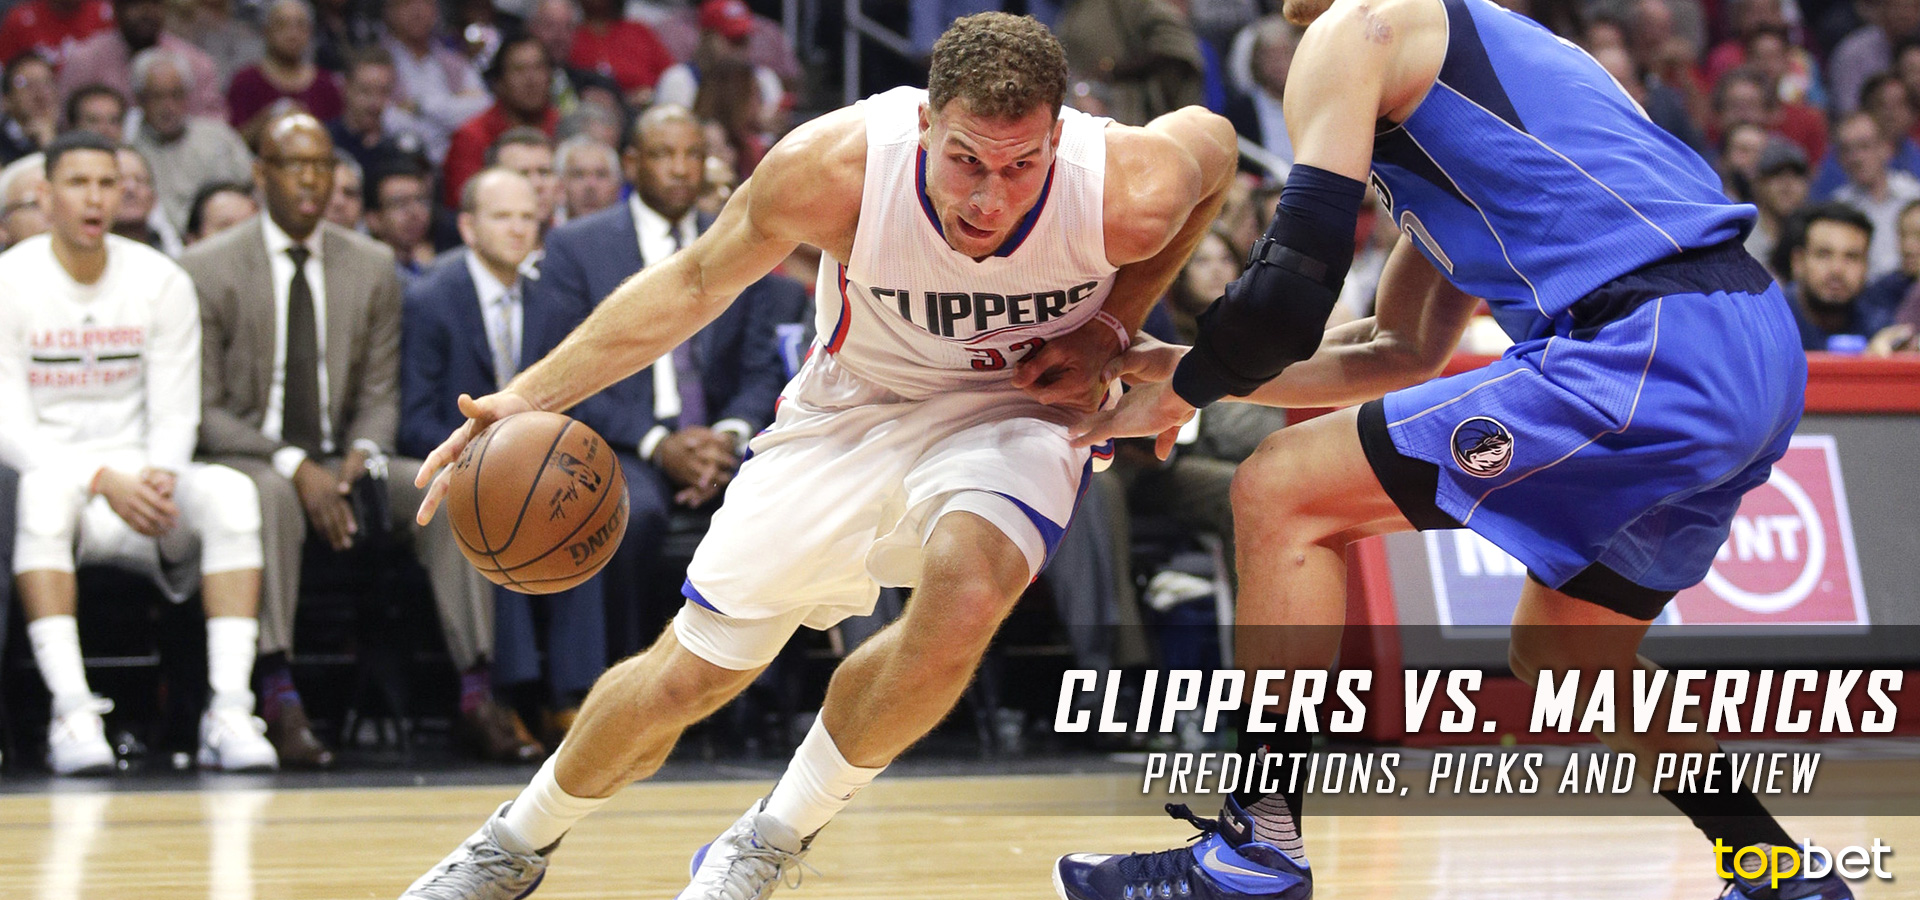 Clippers Vs Mavs Predictions Picks And Preview March 2017